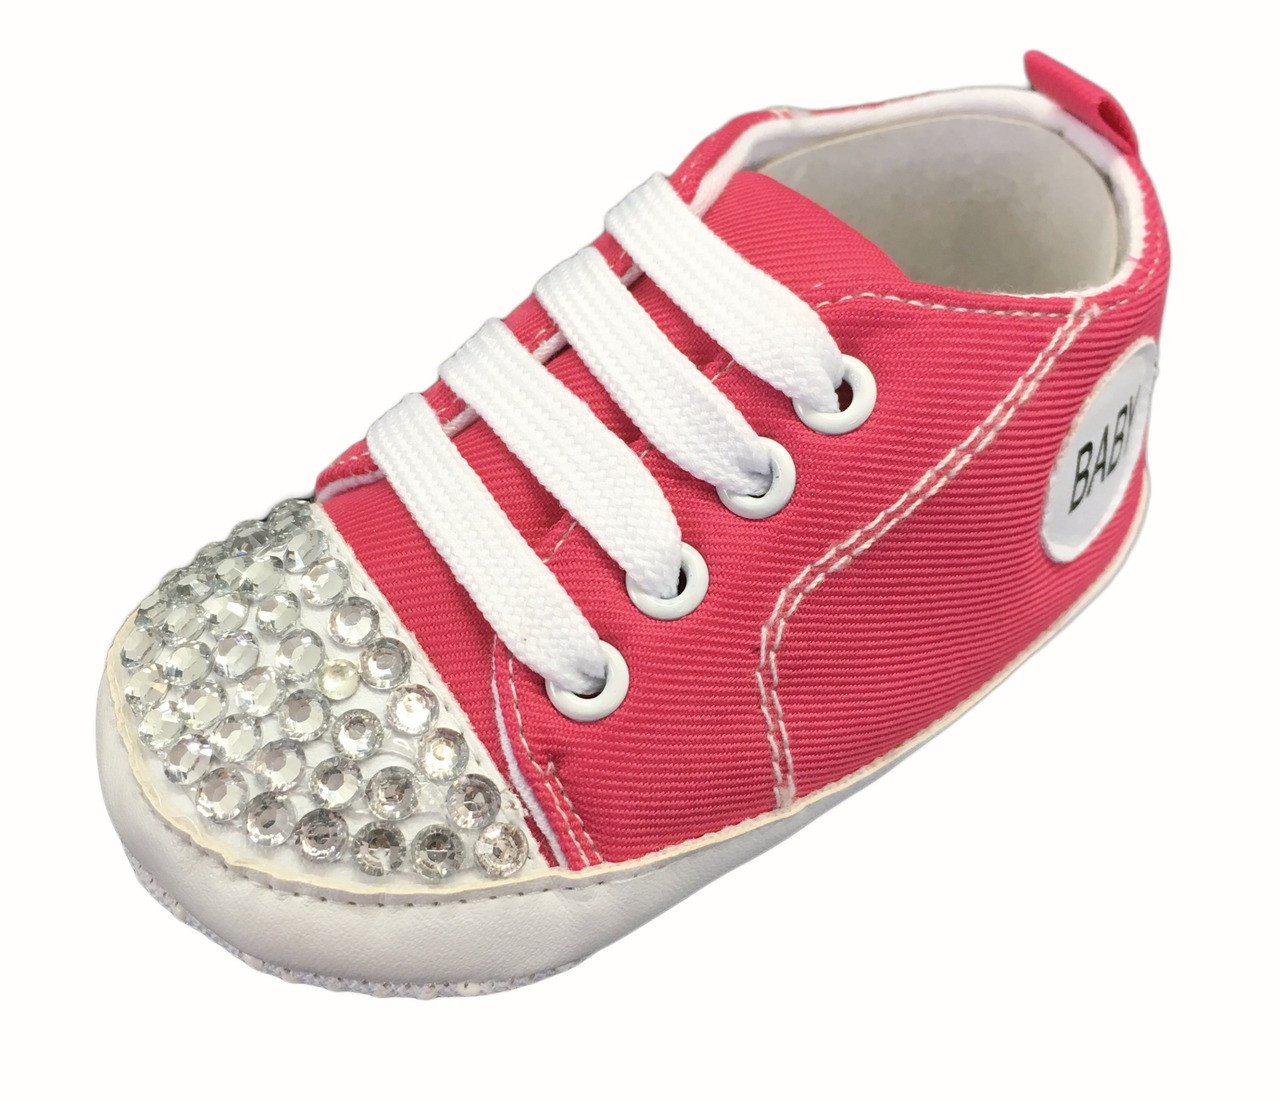 ecbd4ac050ff4 Hot Pink Baby Sneakers With Rhinestones